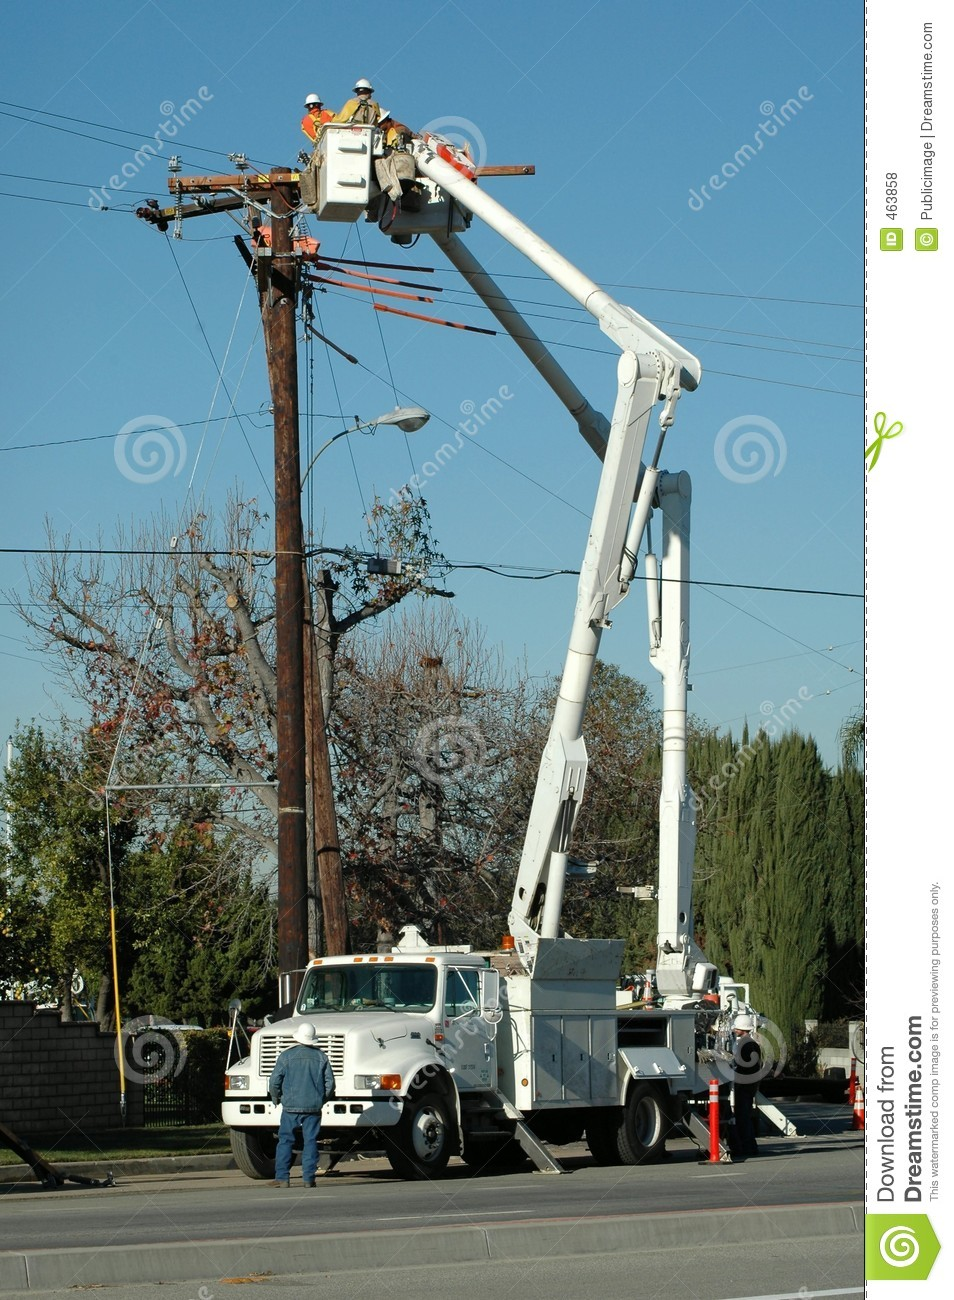 Download Electric Crew Working stock photo. Image of power, worker - 463858